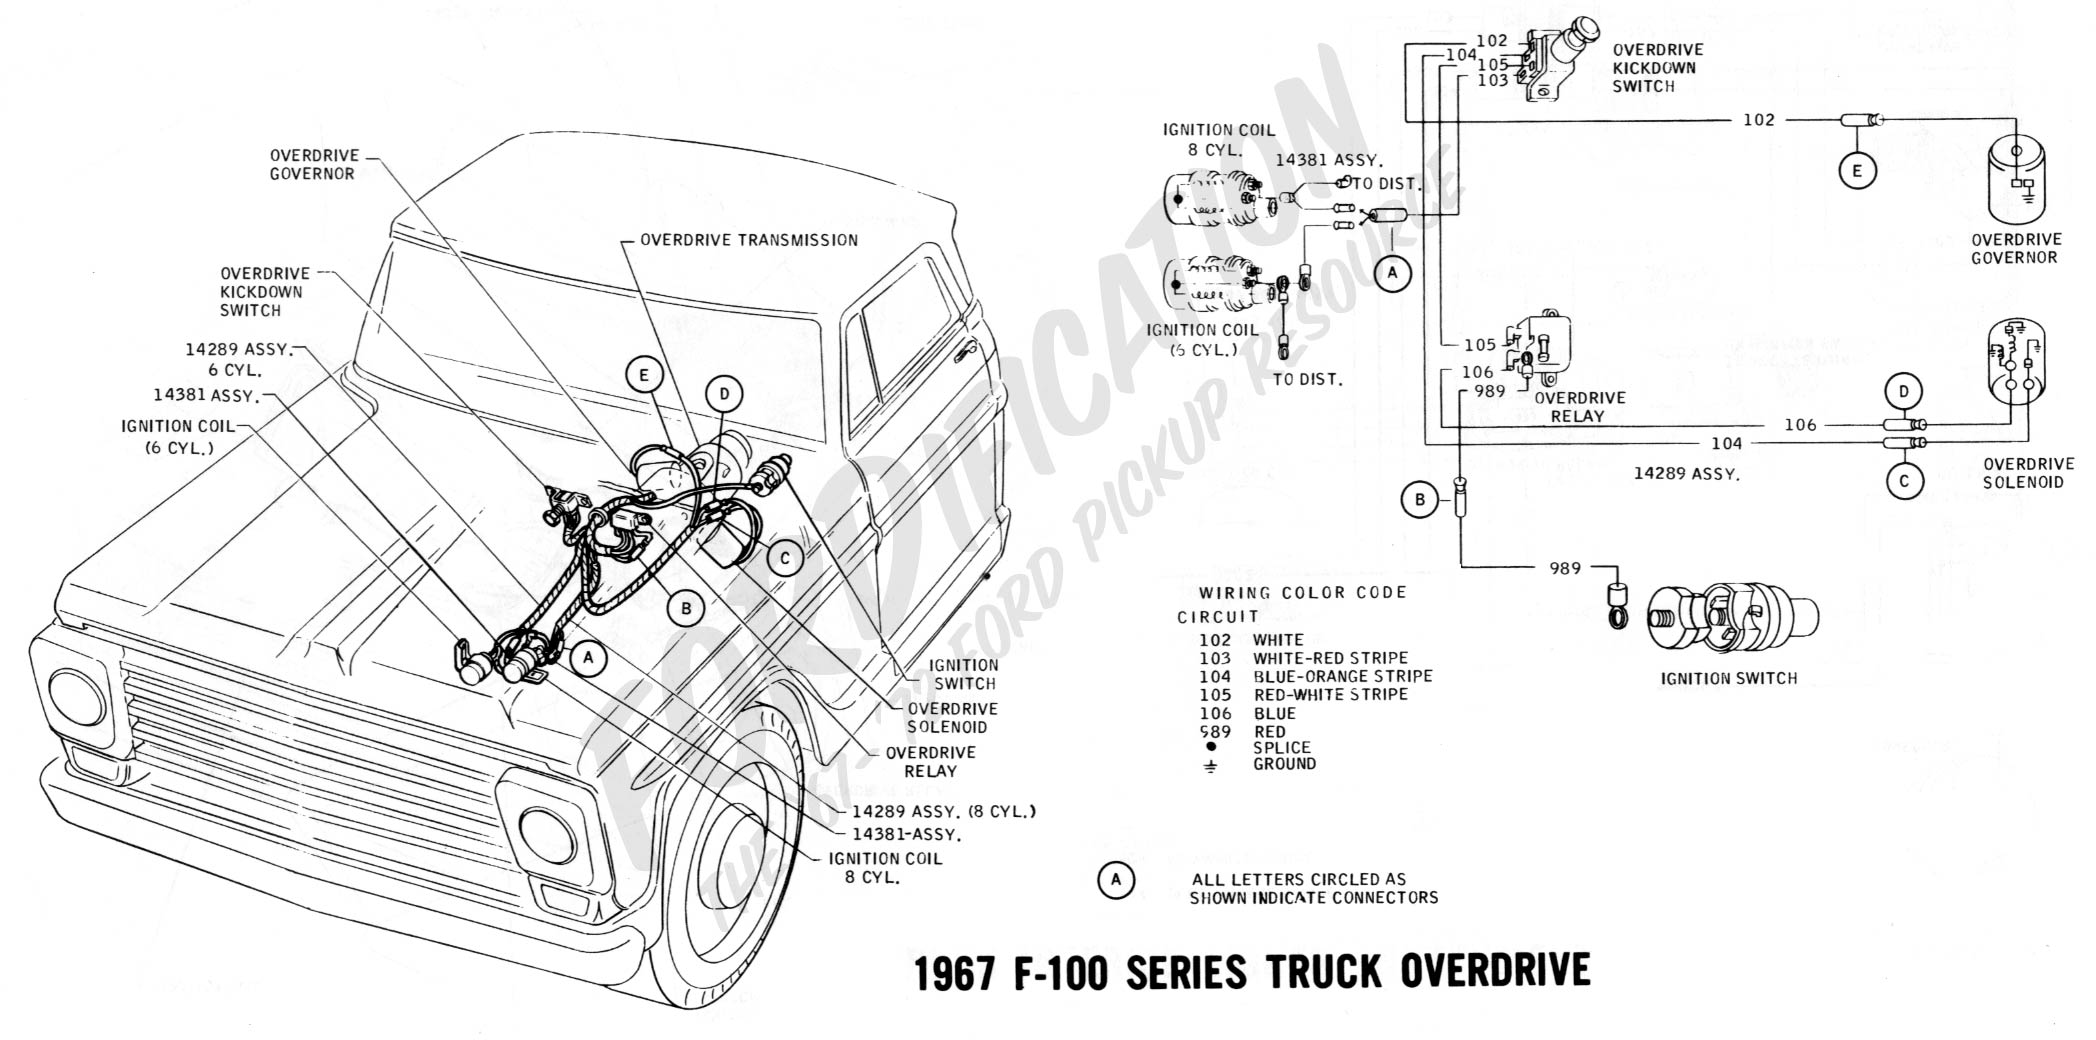 Ford truck technical drawings and schematics section h wiring 1967 f 100 series overdrive 1968 wiring schematics cheapraybanclubmaster